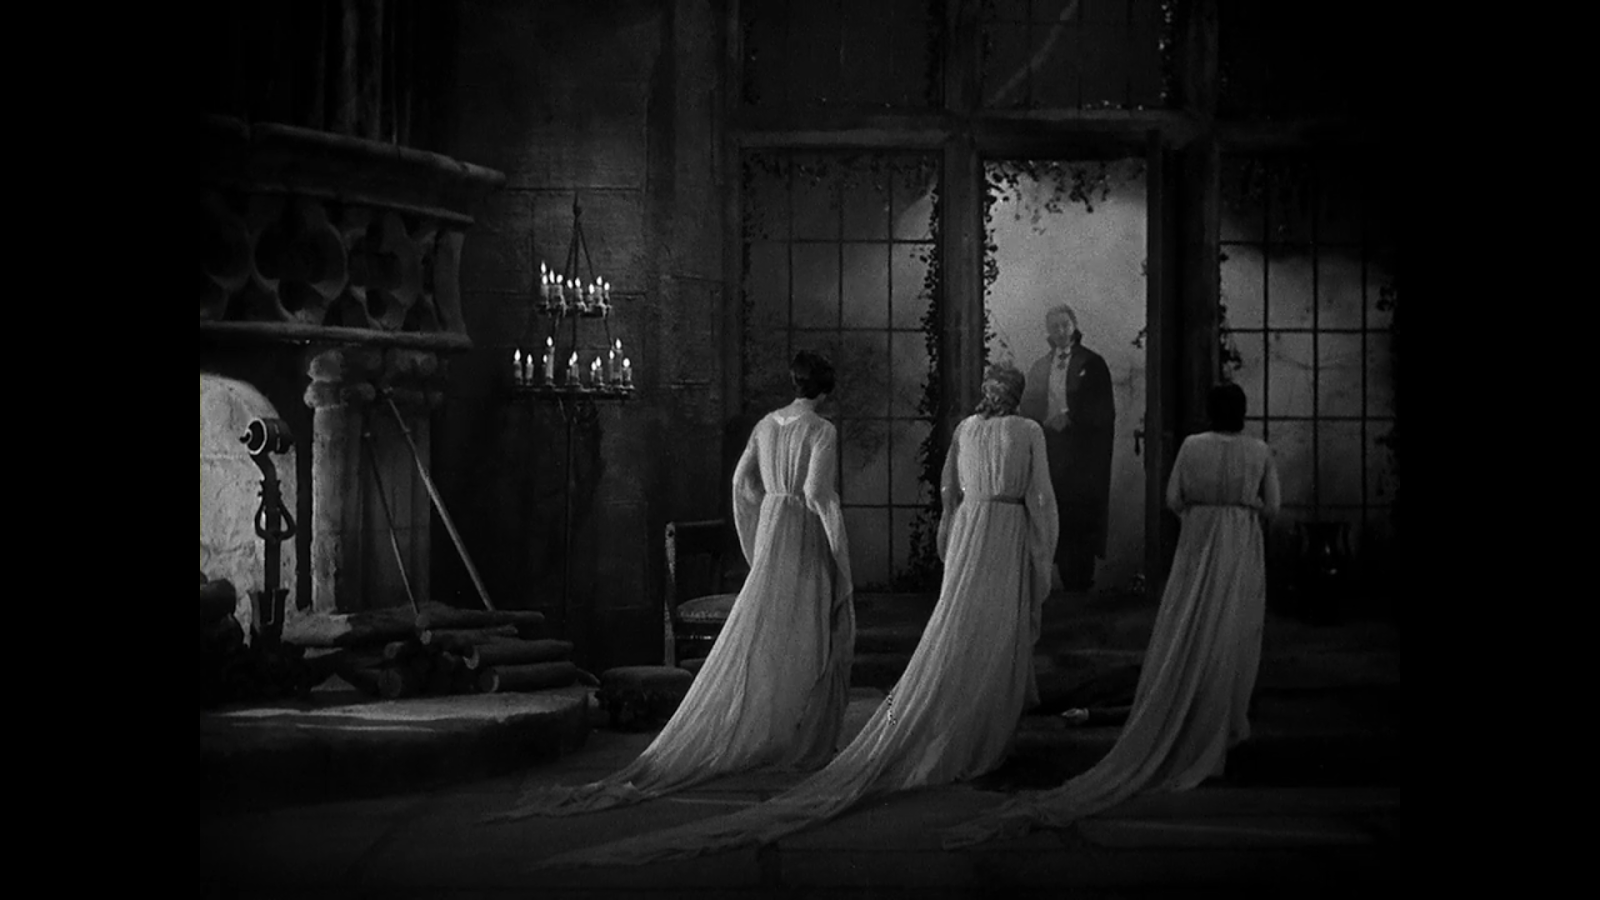 dracula sexuality thesis Part of the feminist, gender, and sexuality studies commons, film  as i read  dracula (1897), i puzzled over bram stoker's mina harker, who  thus my thesis  was born, examining female narration in vampire fiction and.